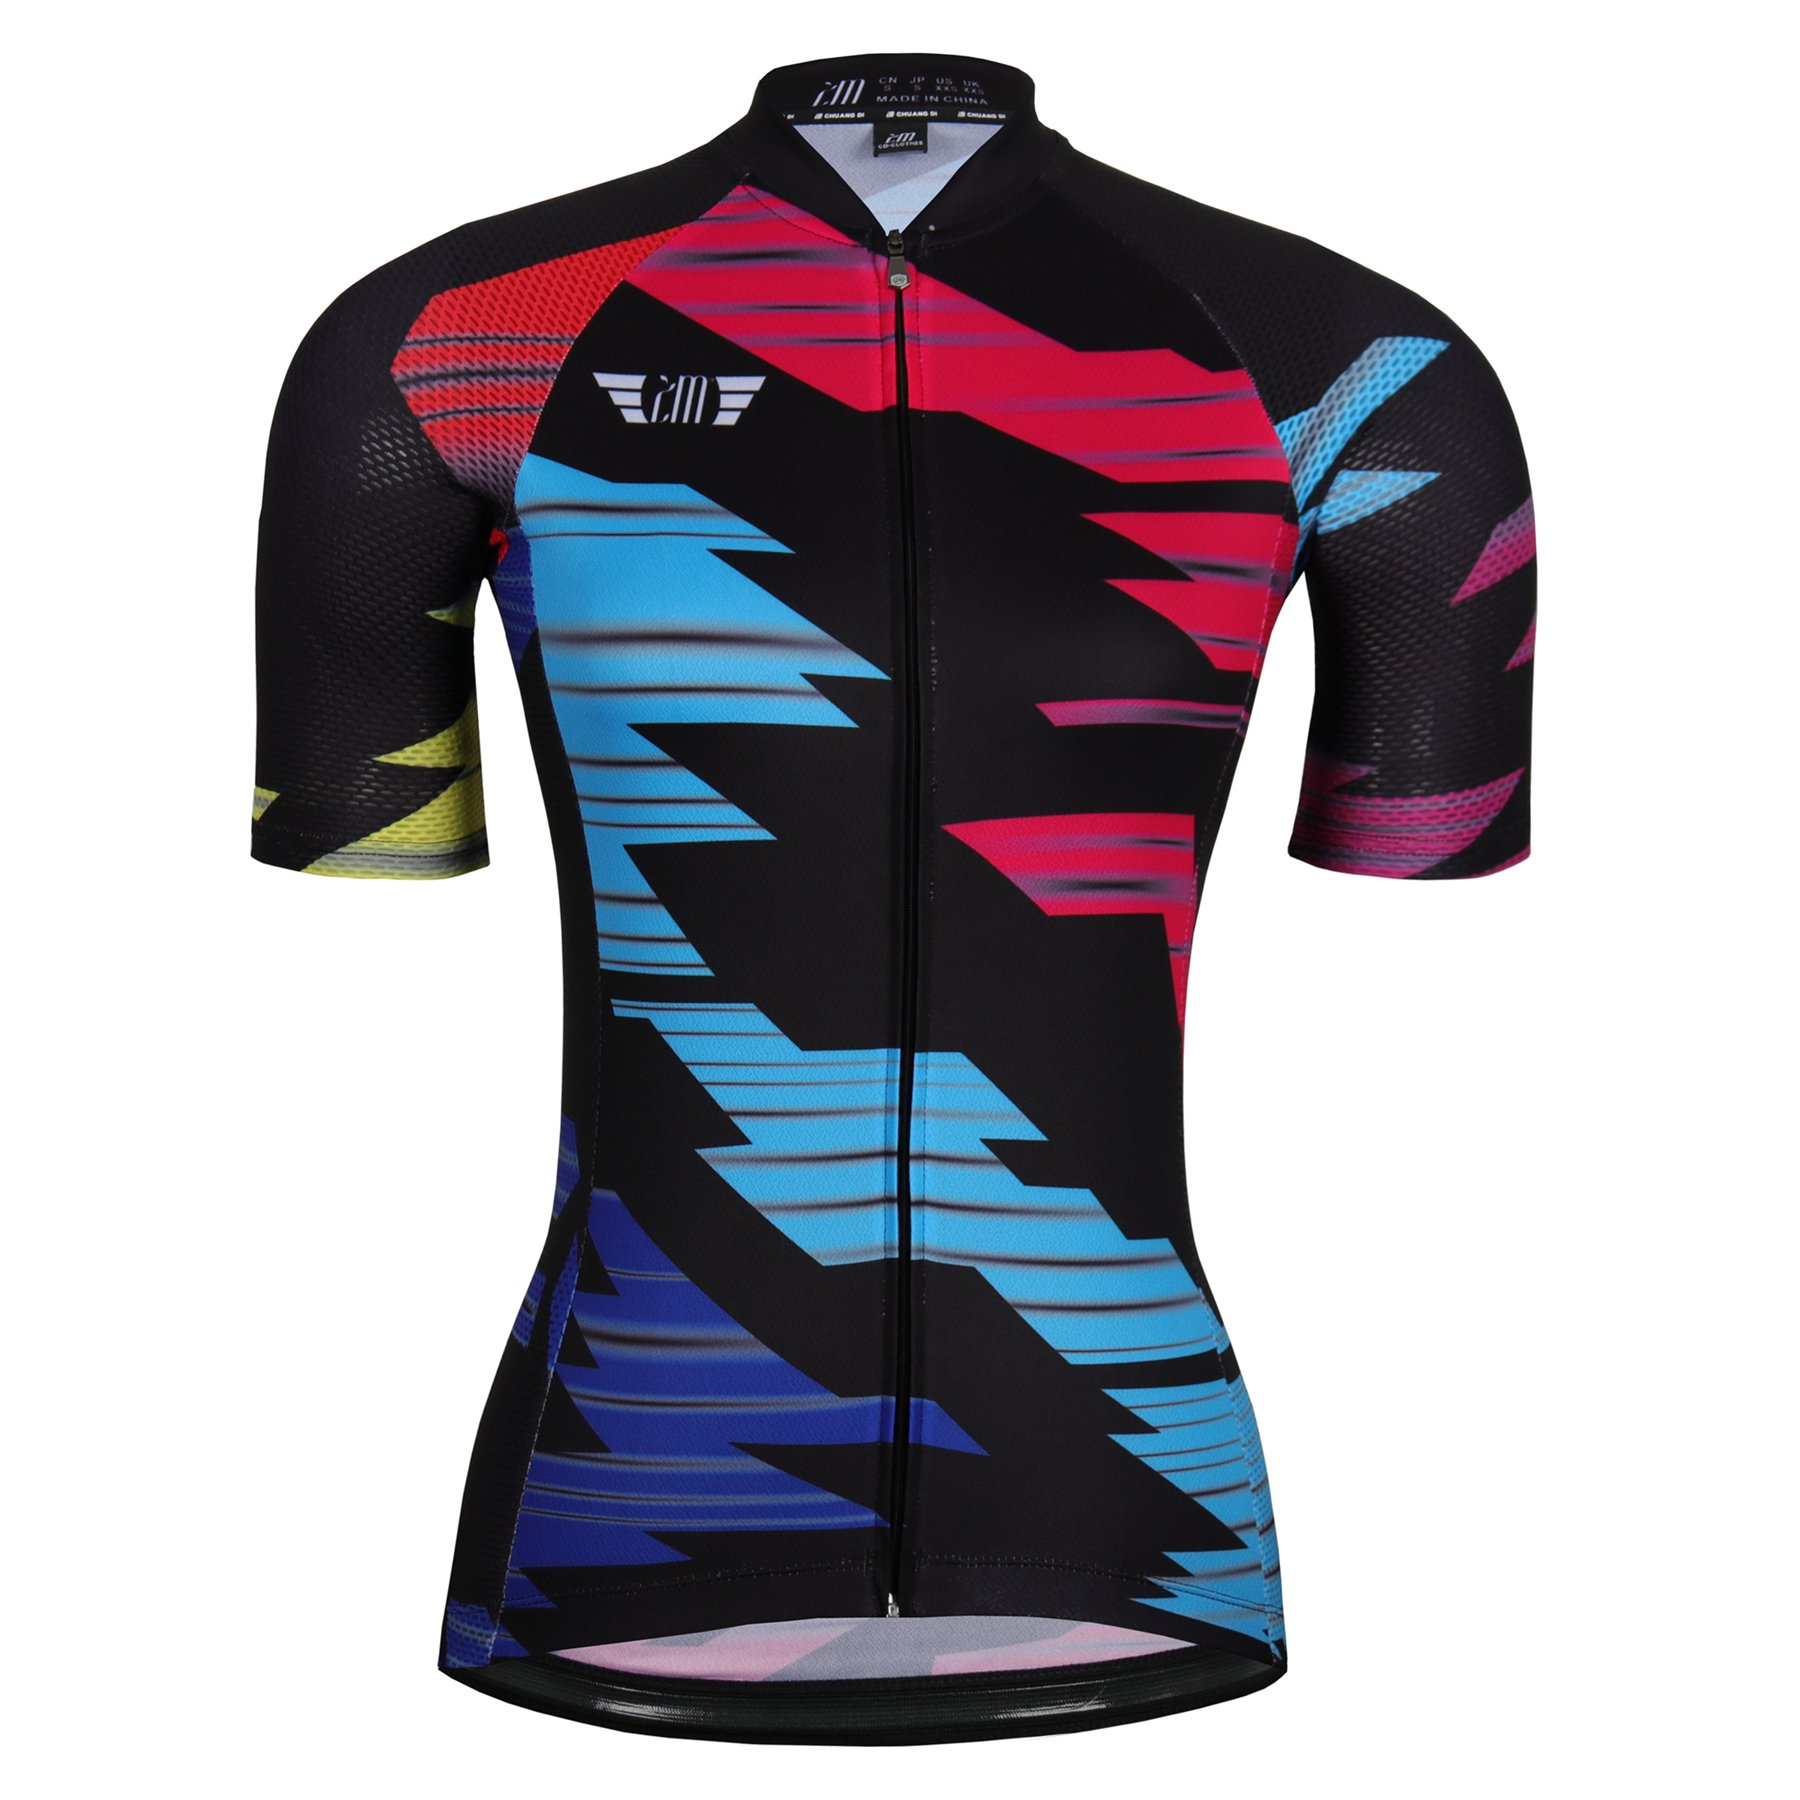 zm Floral Short Sleeve Bicycle Cycling Jersey For Women by ZM